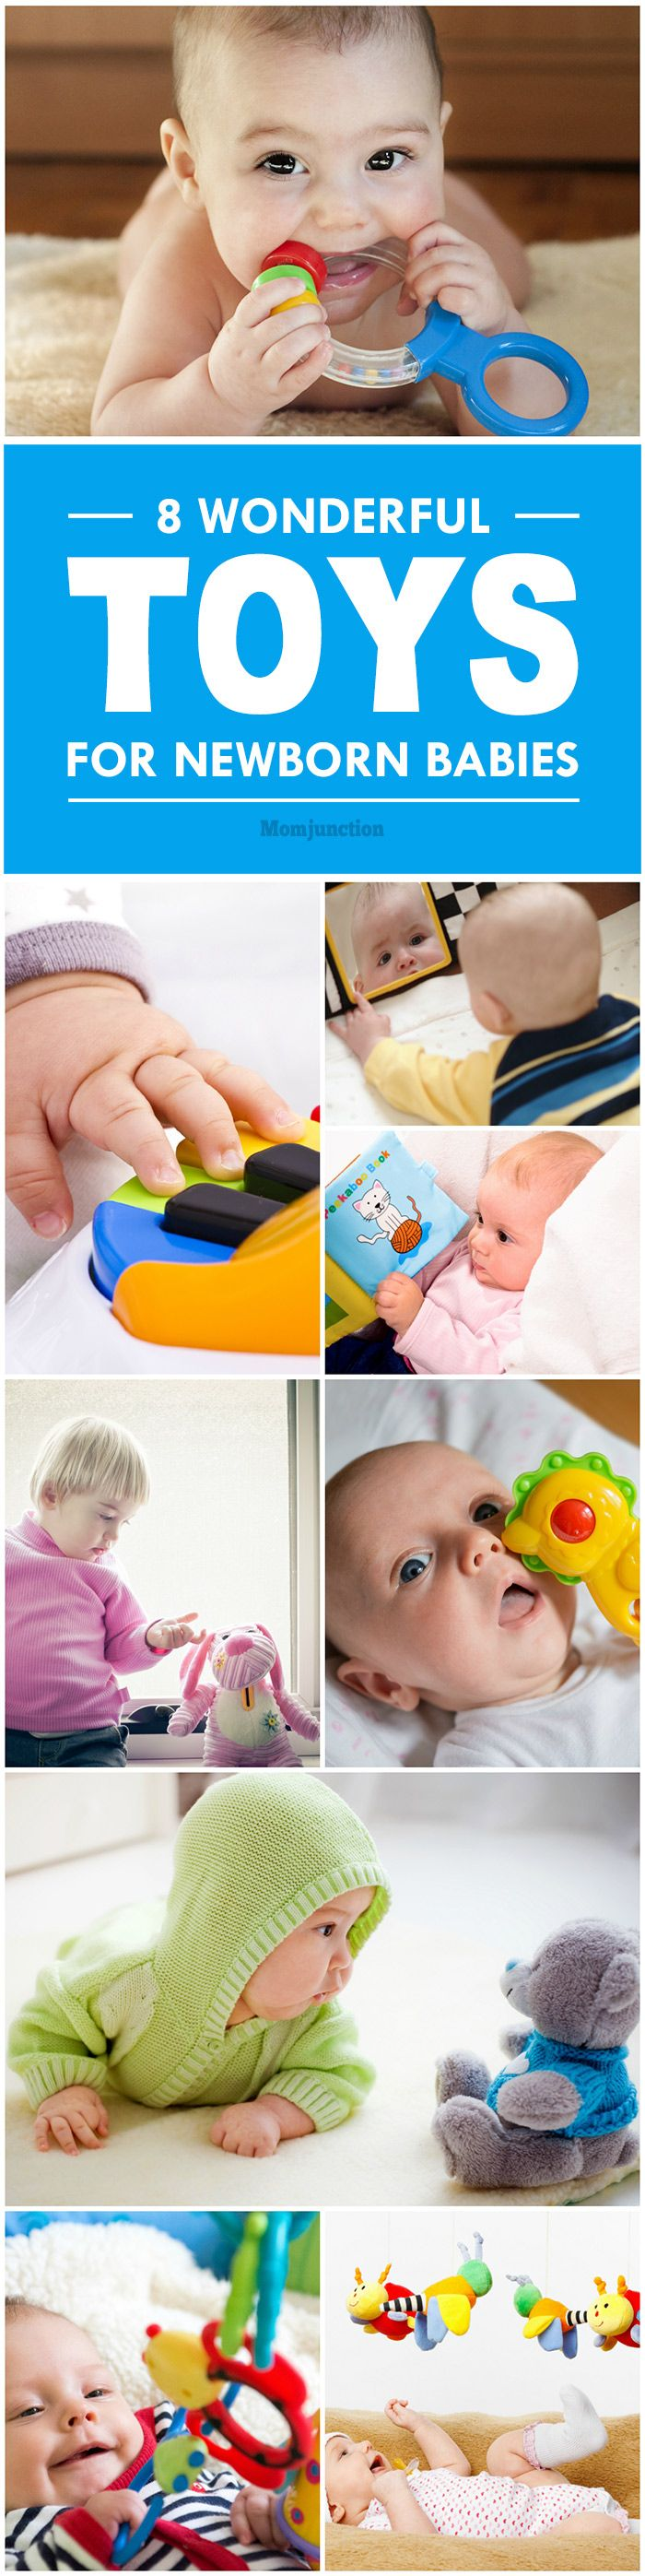 Do you want to engage your baby in creative, entertaining activities and prevent her from crying? Check out our post to 8 fantastic toys for newborn babies.